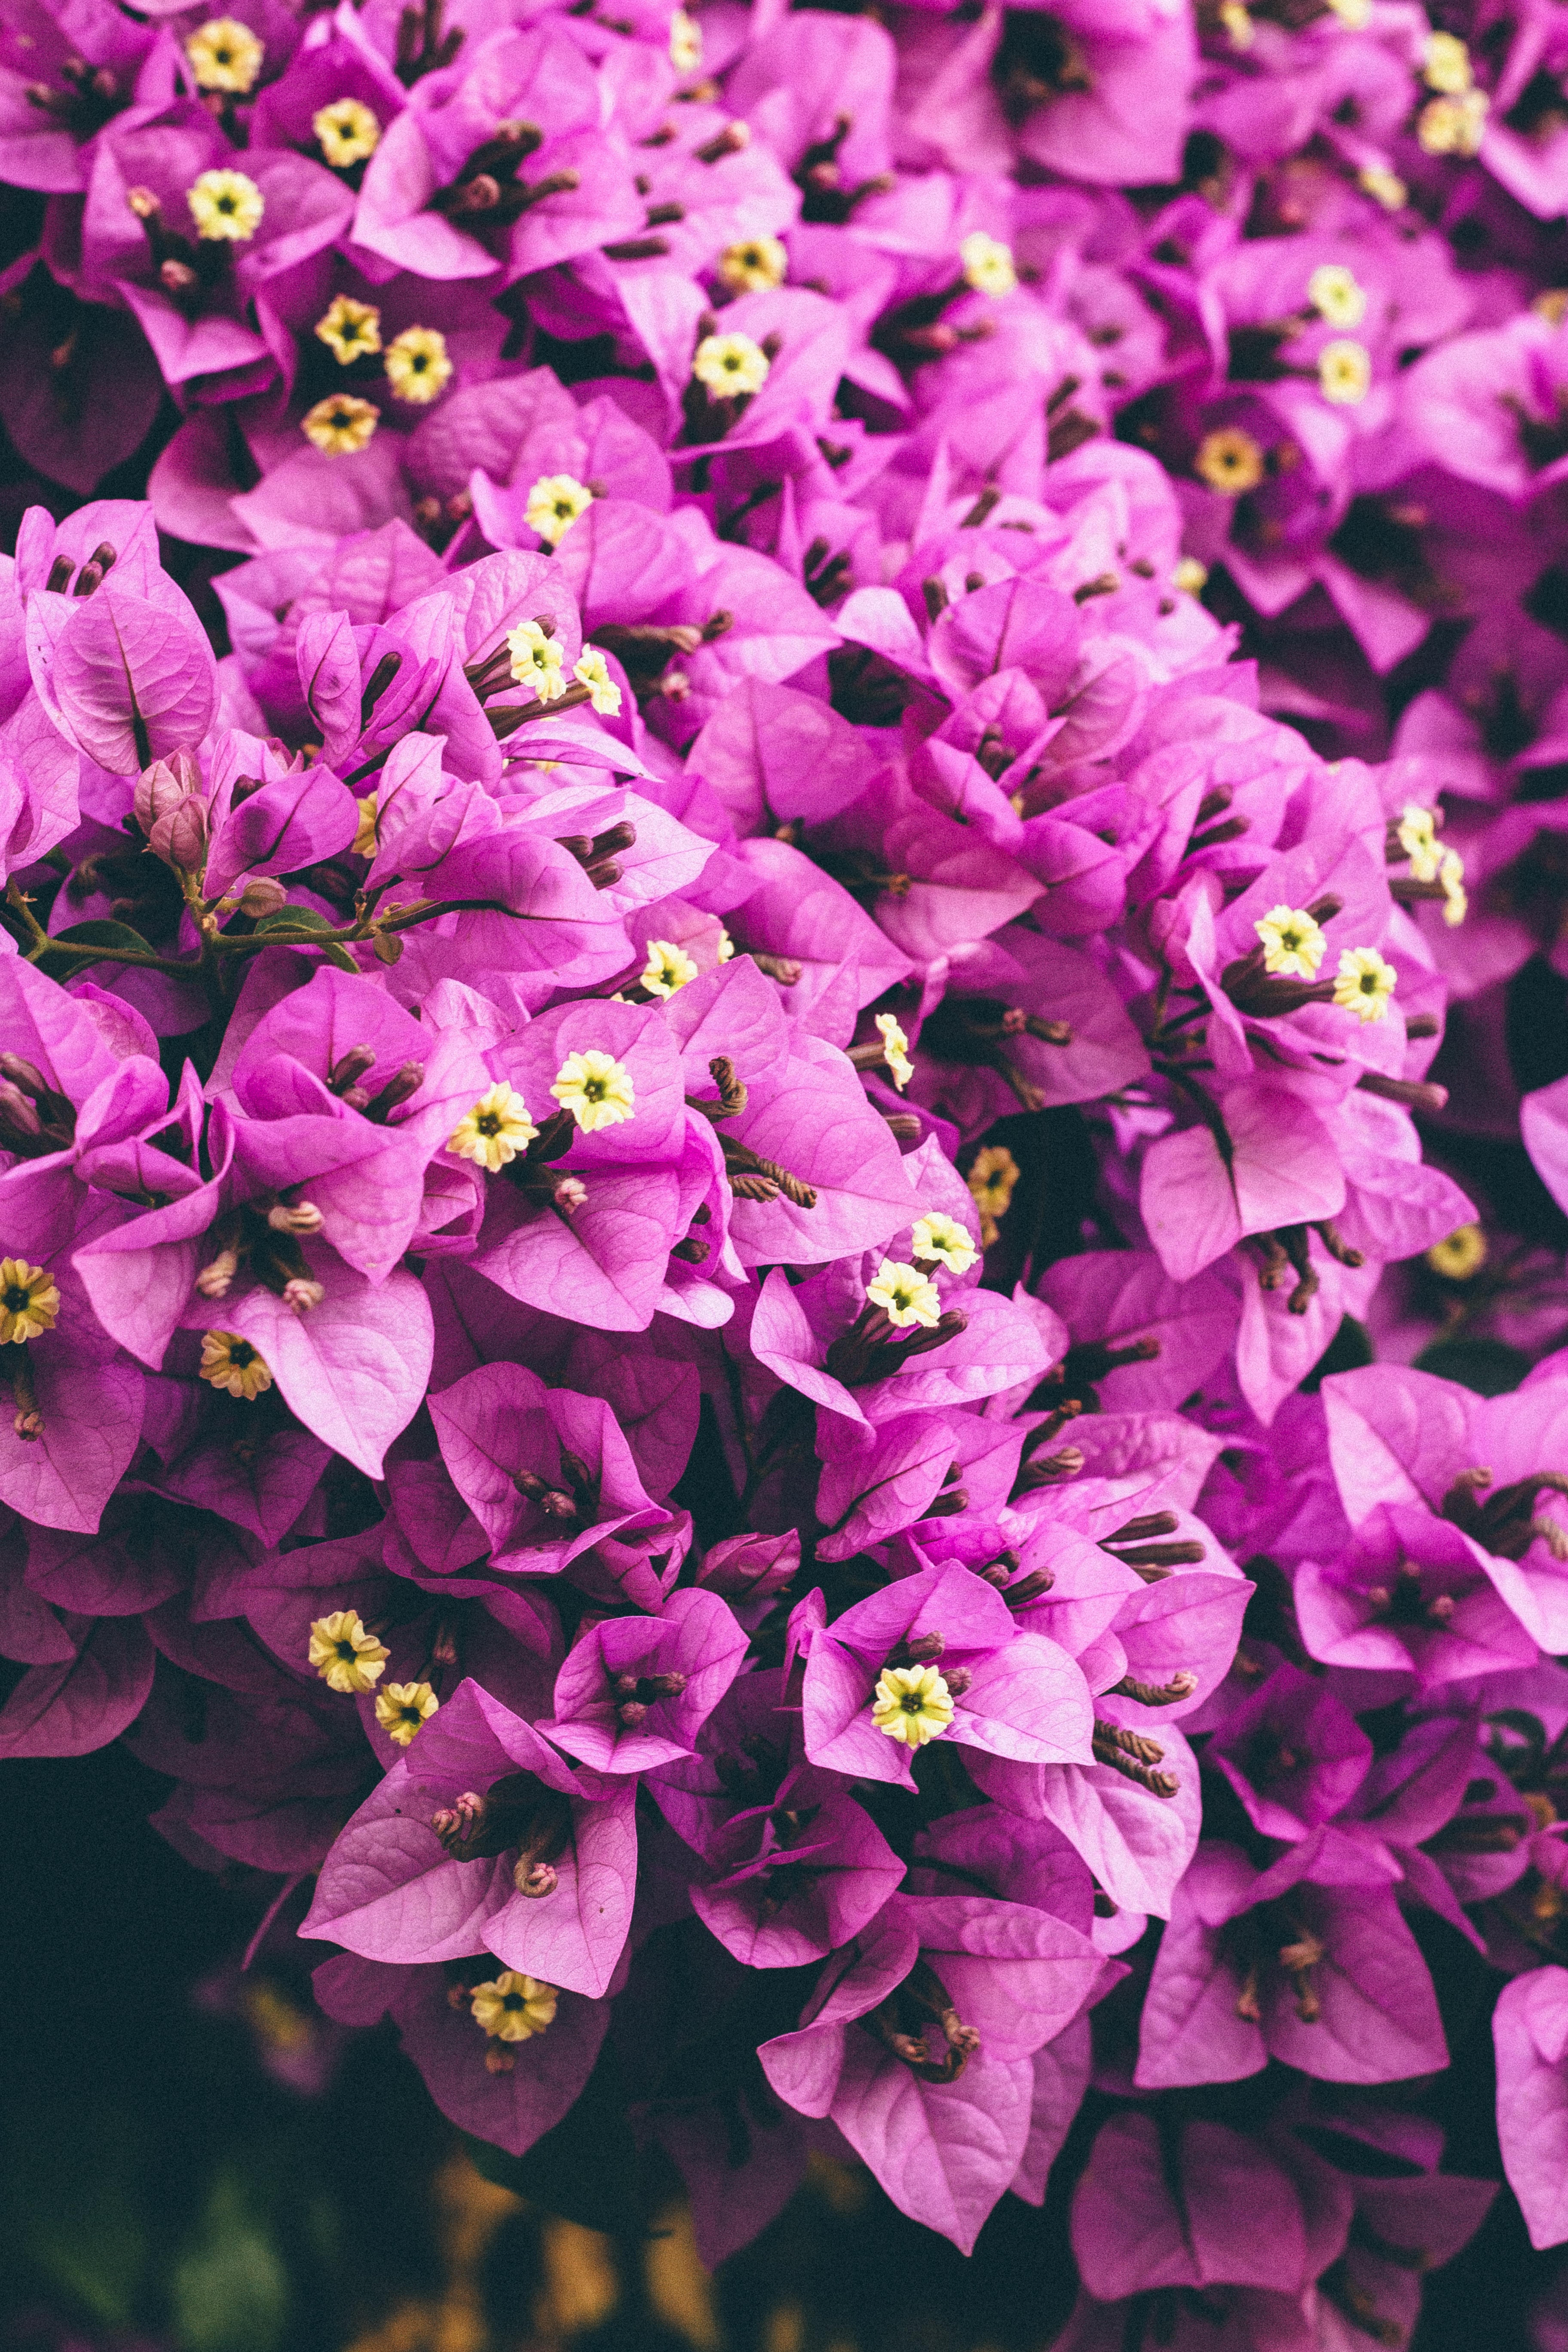 A dense grouping of purple flowers